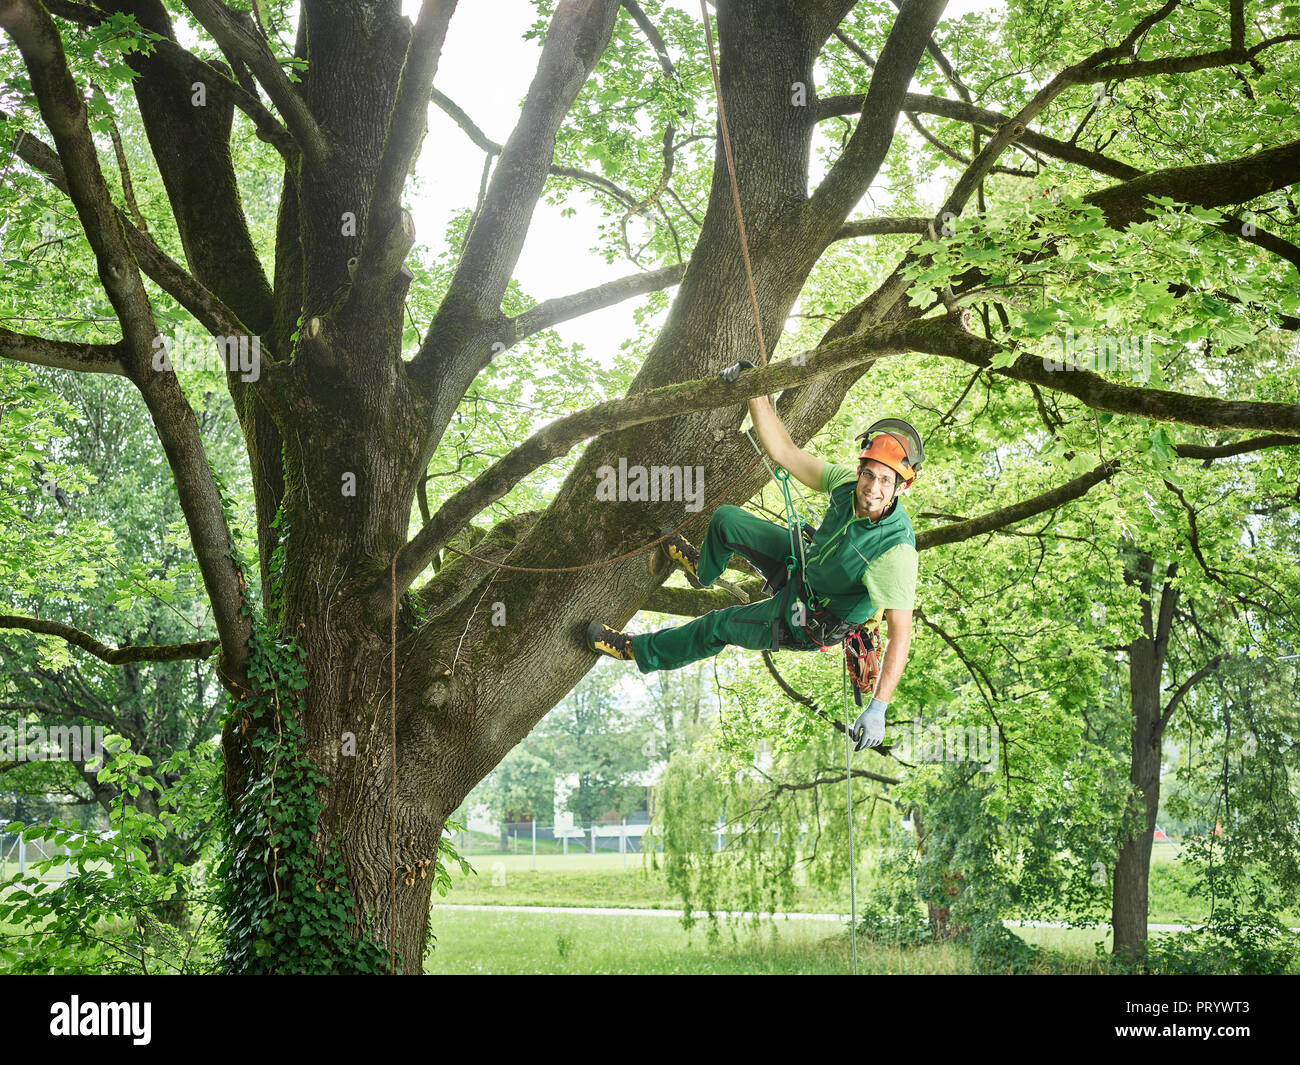 Tree cutter hanging on rope in tree Stock Photo